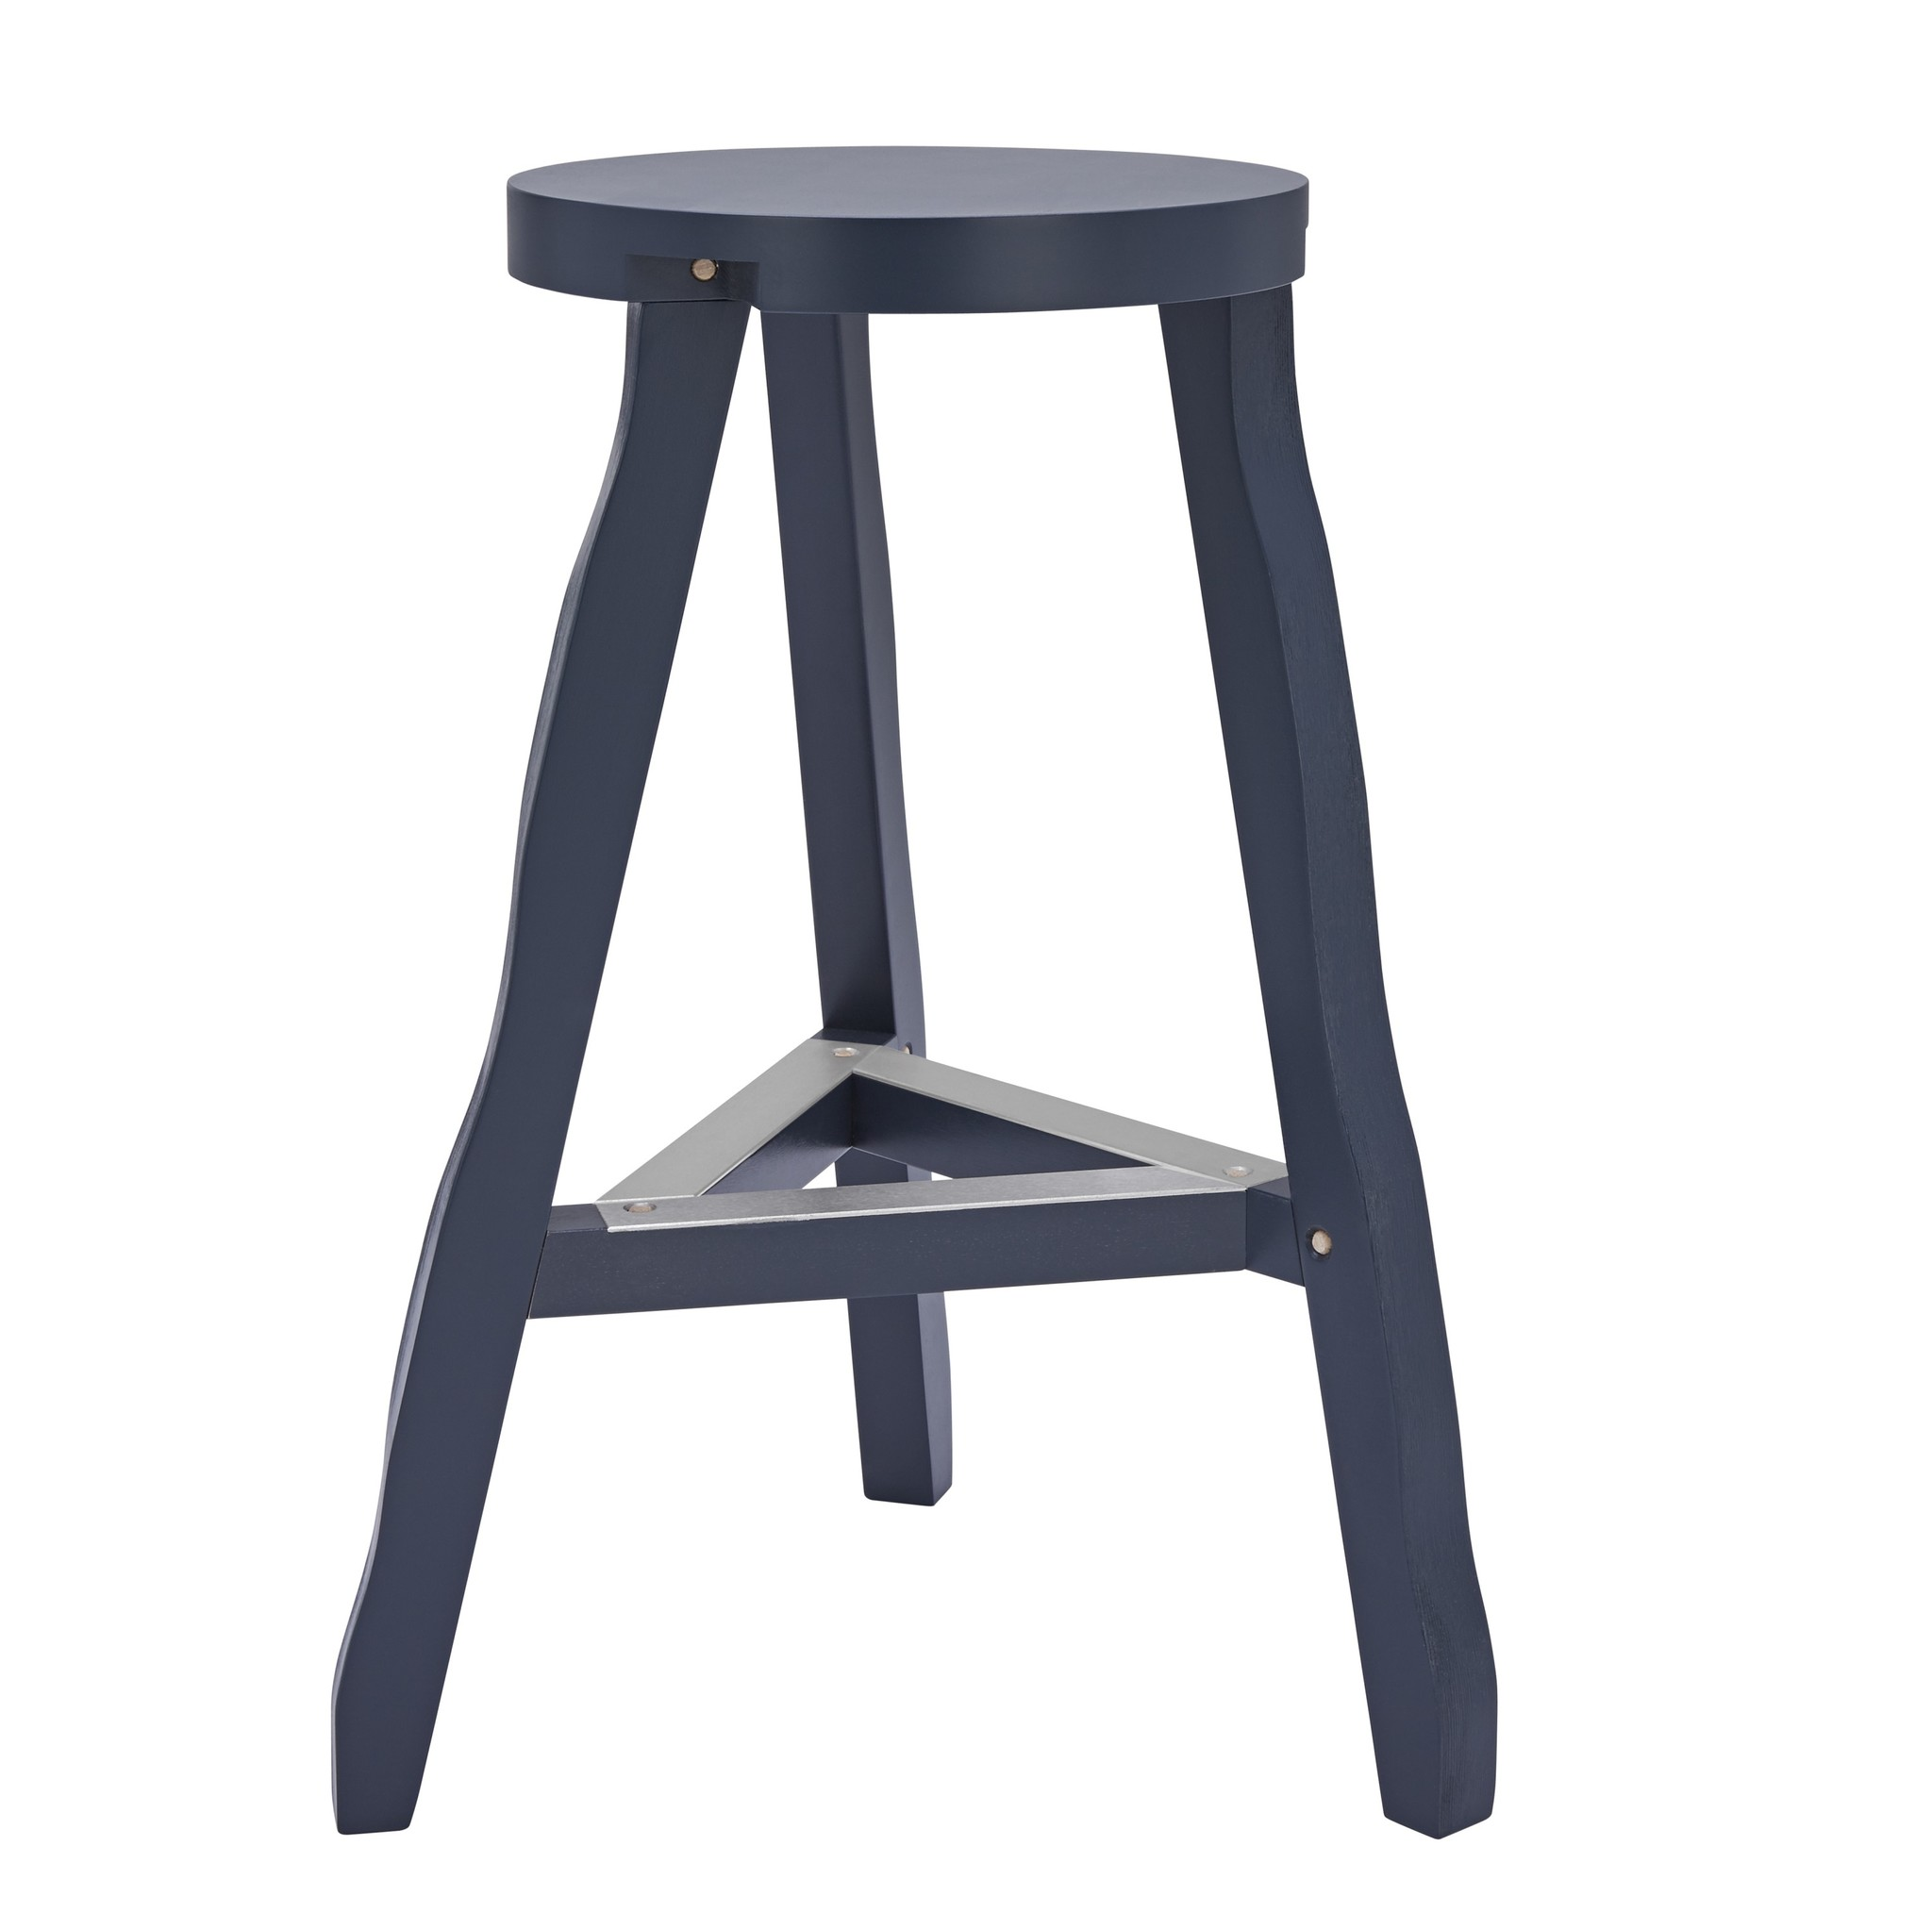 Offcut Stool blue/grey. sold by 3